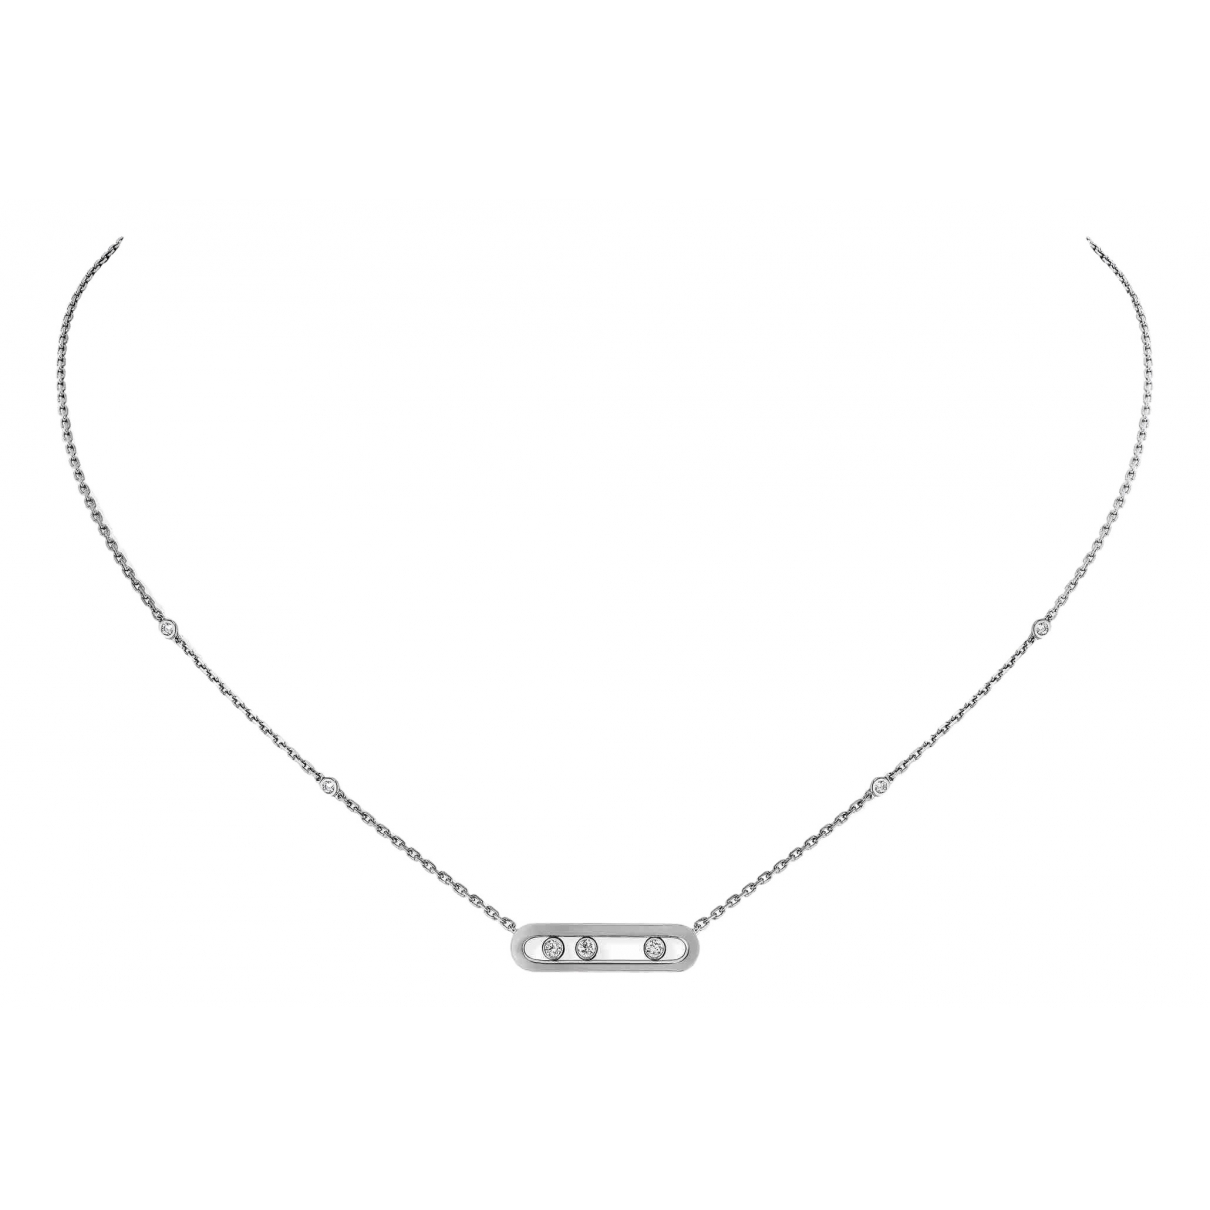 Messika Move Classique Kette in  Weiss Weissgold